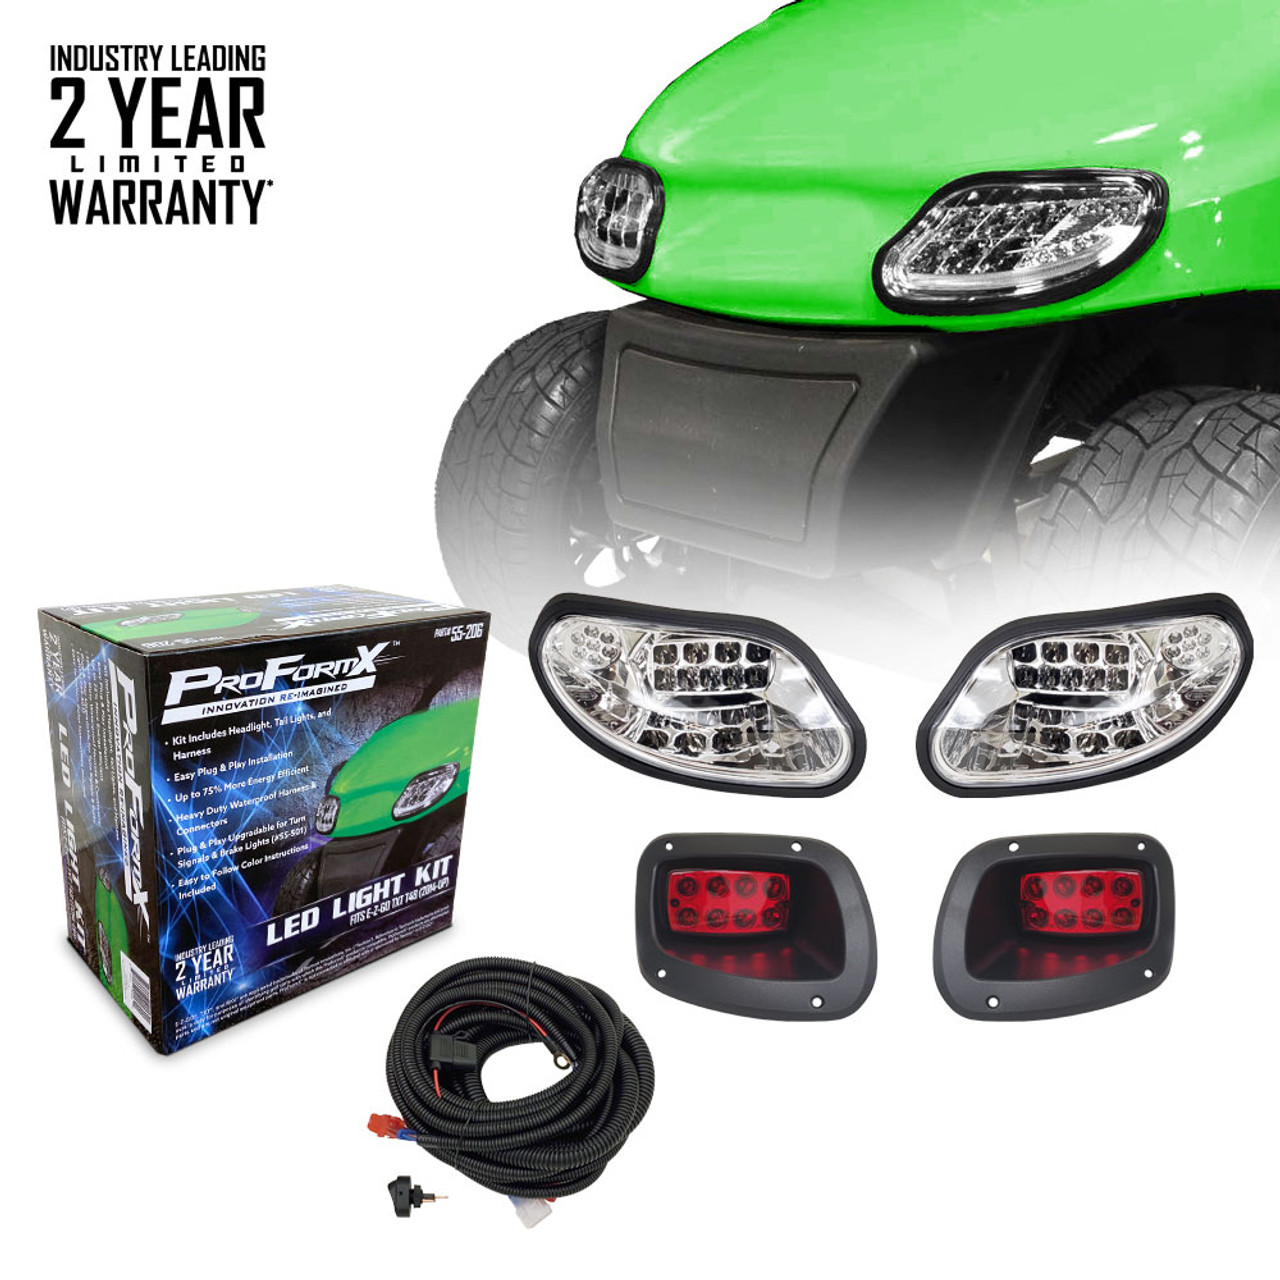 ProFormX Upgradable LED Light Kit for E-Z-Go TXT-Freedom-T48 (2014 and up) - Plug & Play Installation with Warranty Information